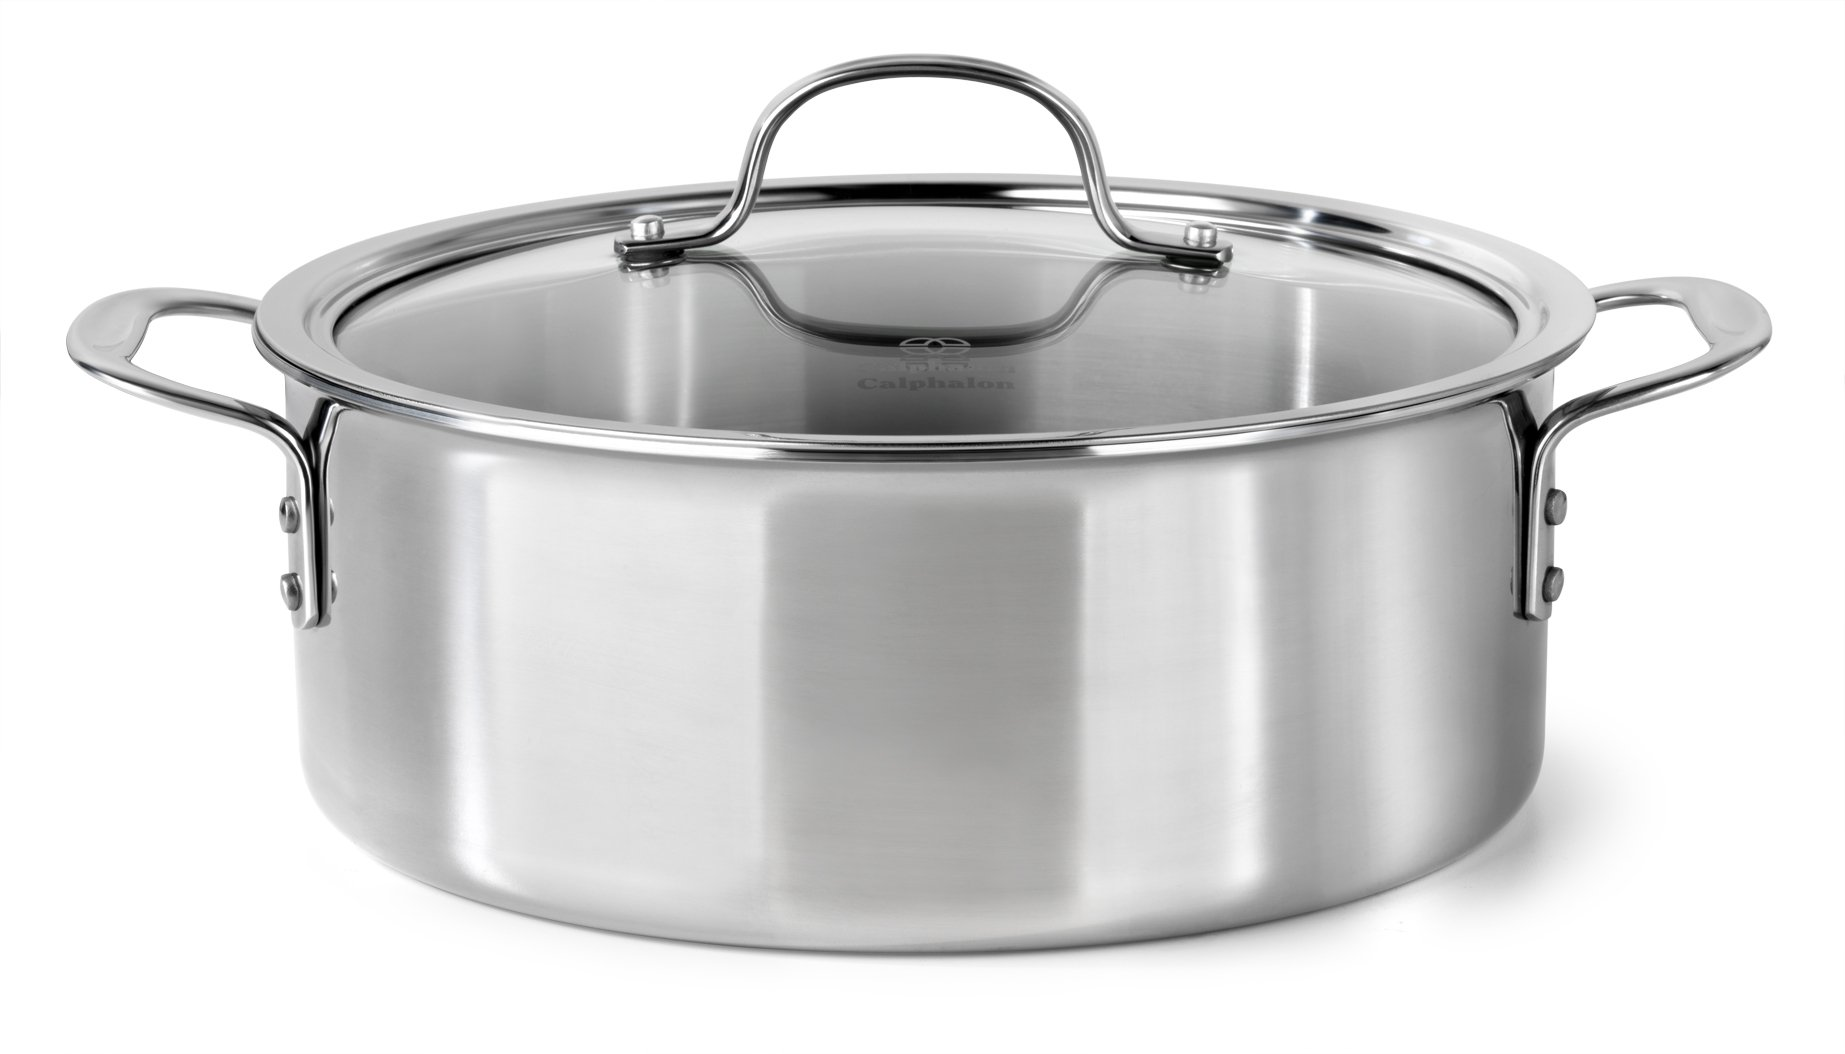 Calphalon Tri Ply Stainless Steel 5 Qt Dutch Oven With Cover